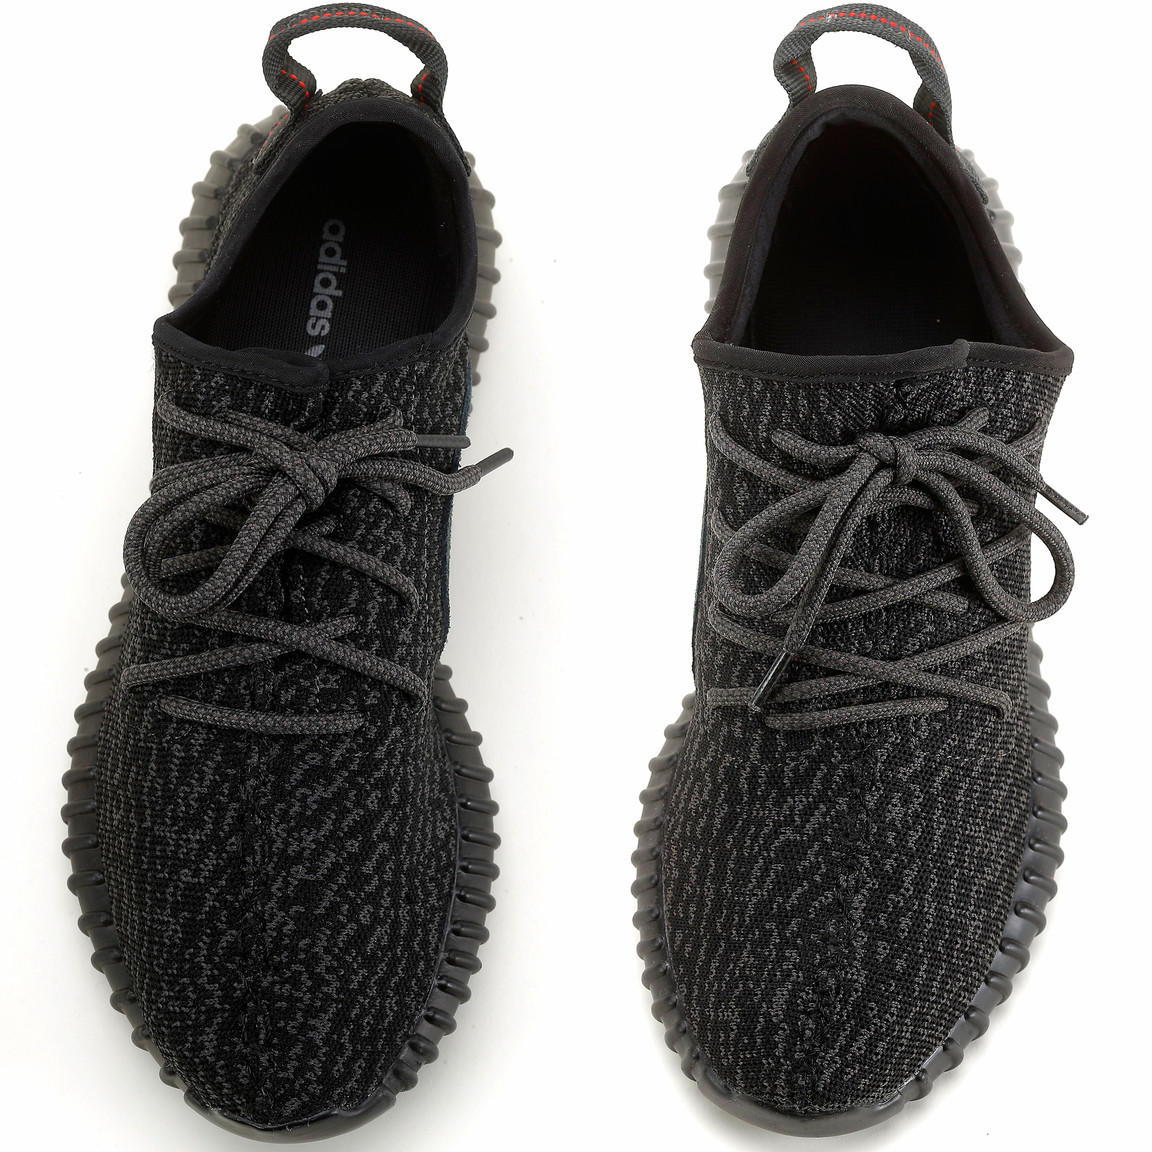 86b7e67098481 Counterfeit Yeezys and the booming sneaker black market - Los ...